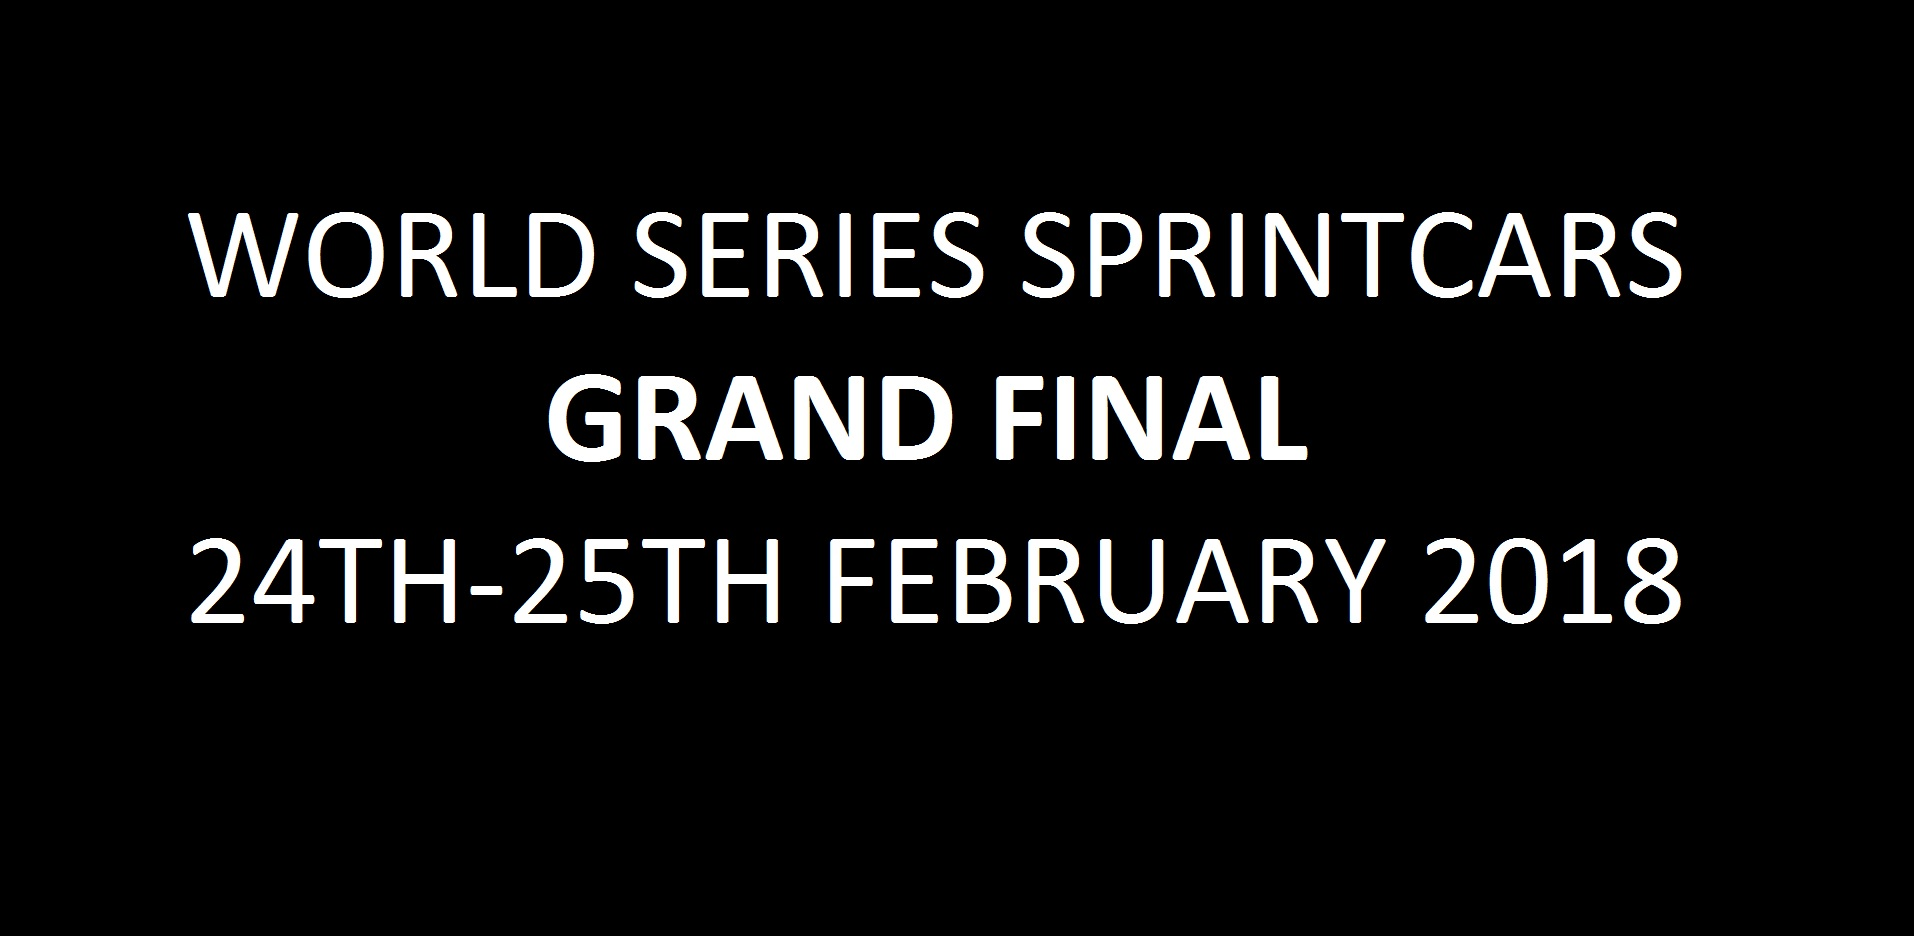 09. World Series Sprintcars Grand Final - 24-25th February 2018 Image